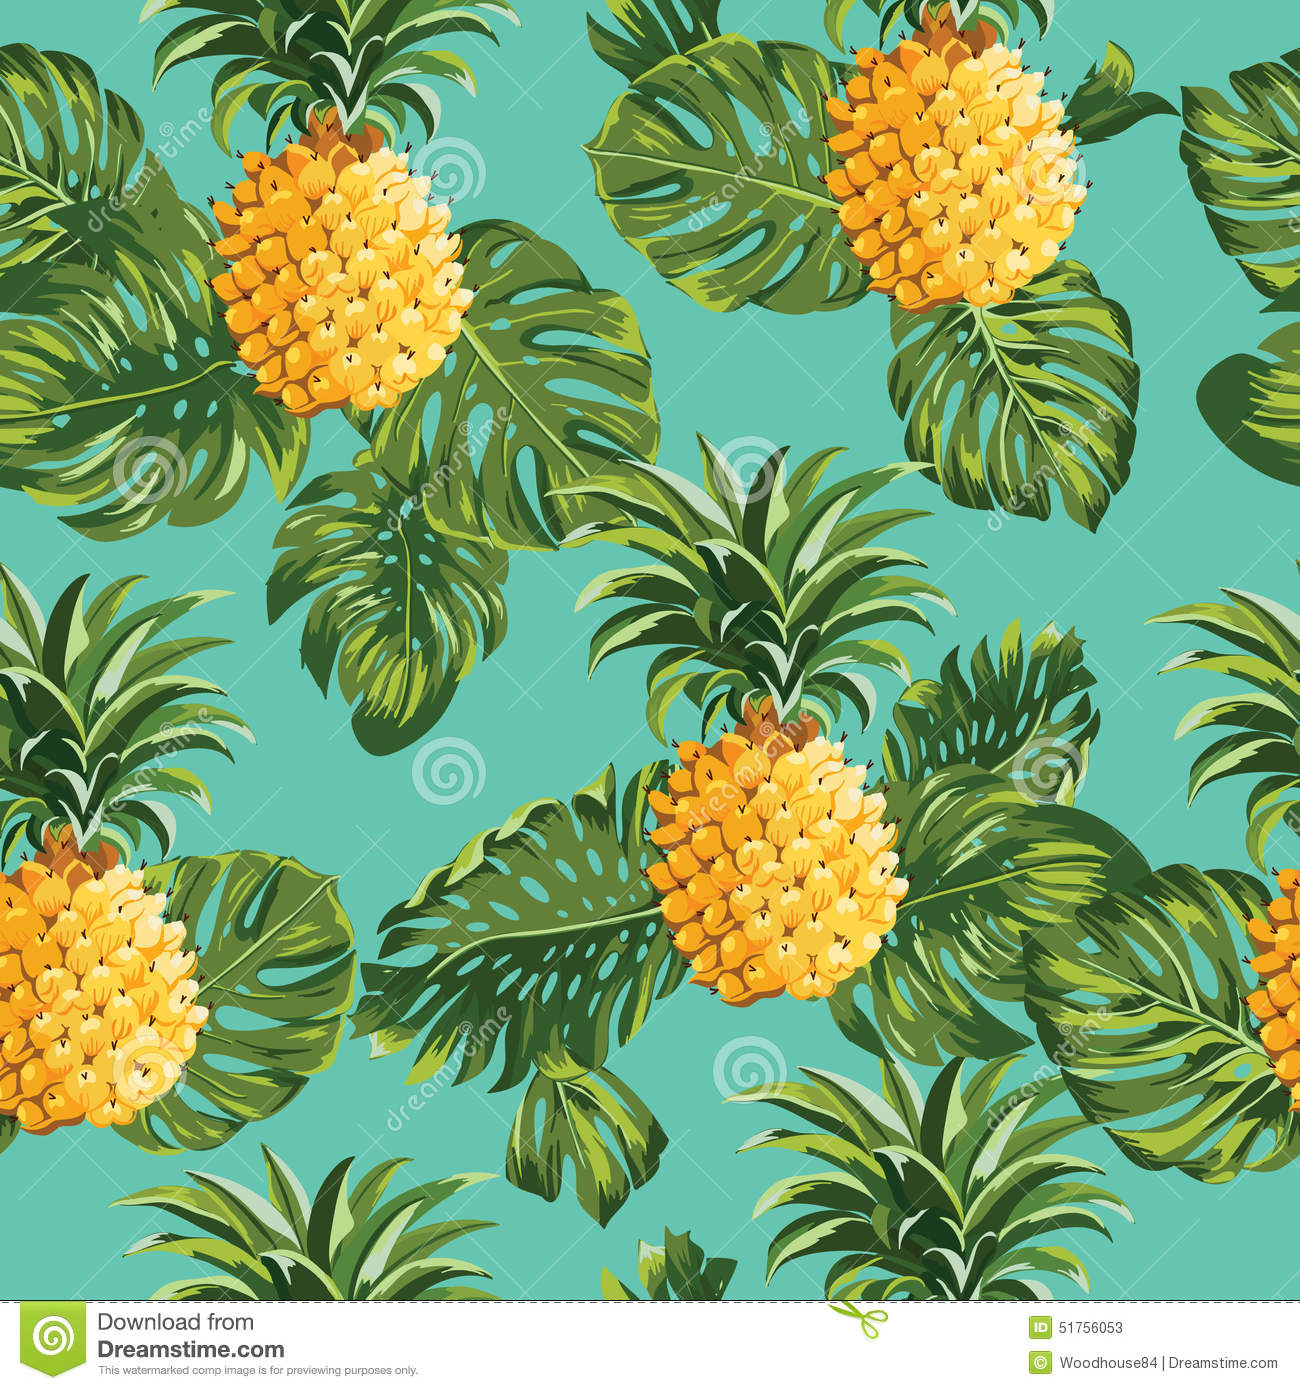 Pineapples And Tropical Leaves Background Stock Vector ...